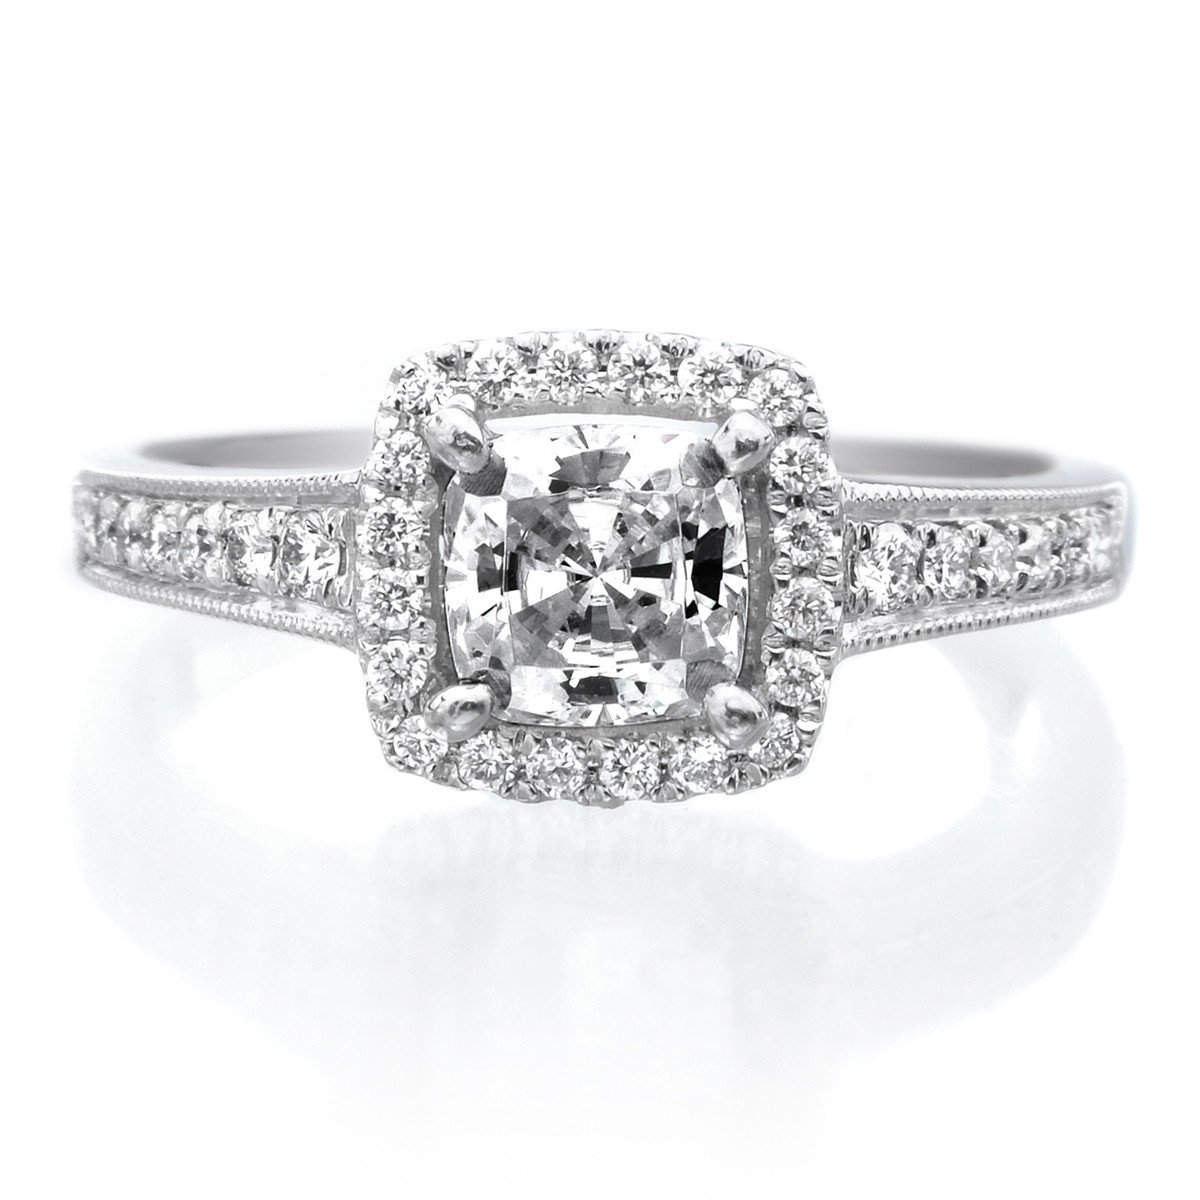 Top 5 Best Engagement Ring Settings: Pave Setting